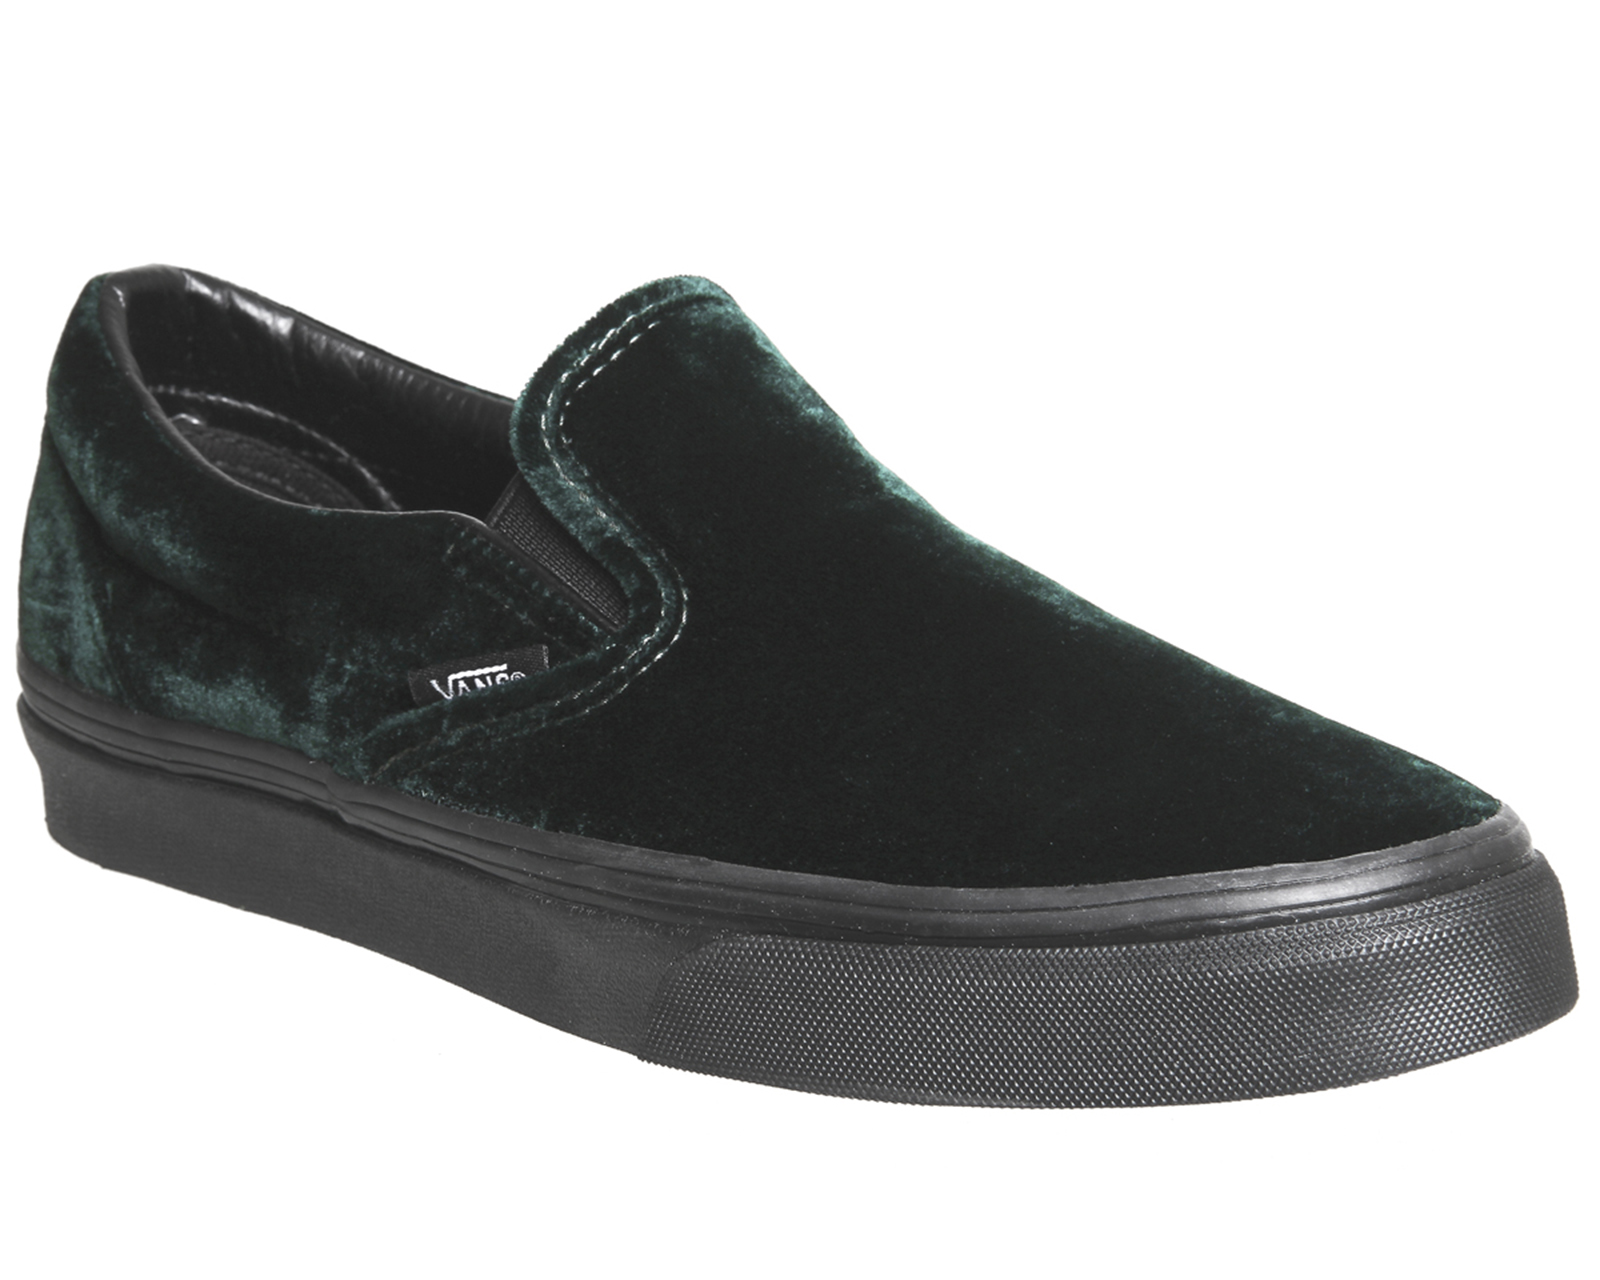 ad69a4a09470 Sentinel Mens Vans Vans Classic Slip On VELVET GREEN BLACK Trainers Shoes